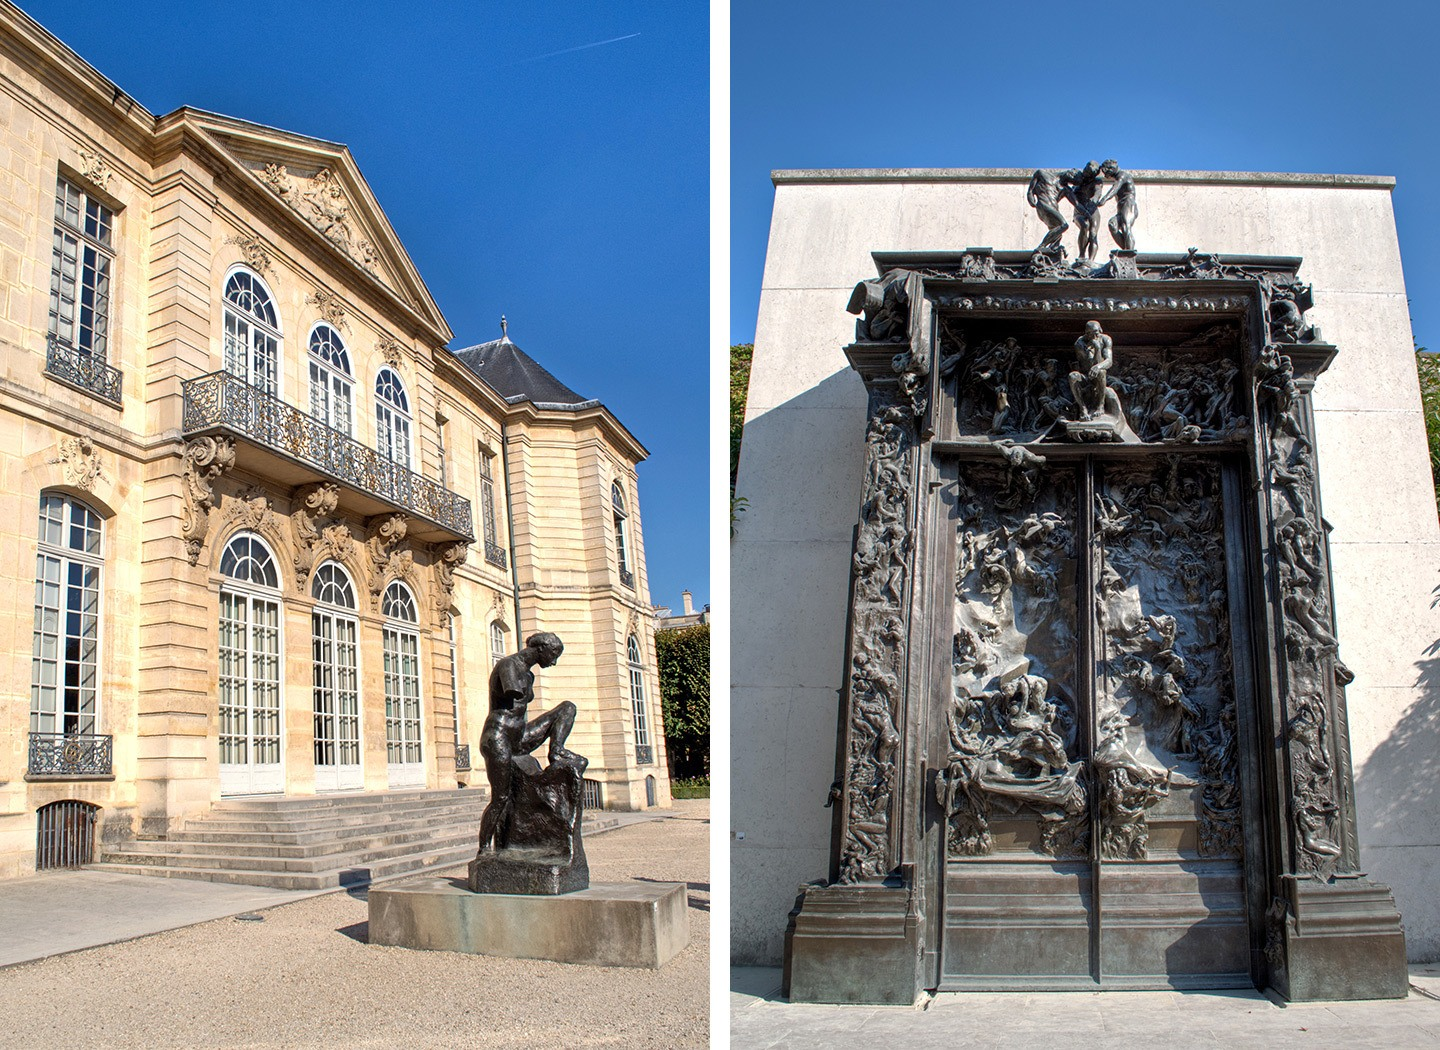 The Rodin Museum sculpture garden in Paris